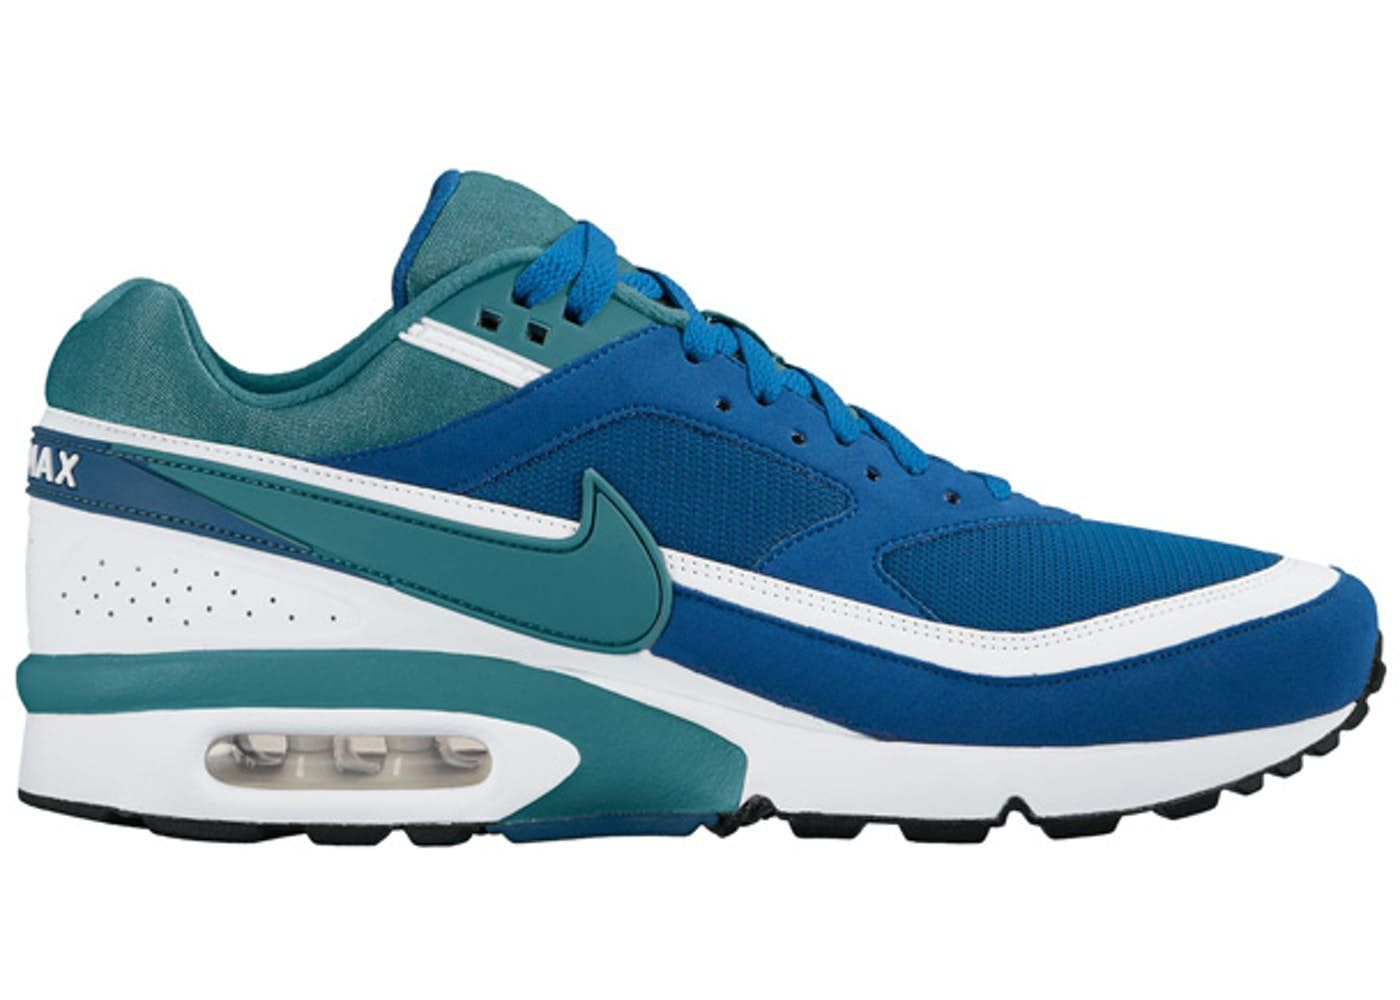 97cf9f1c Check out the Air Max BW Marina Blue (2016) available on StockX | 1 ...